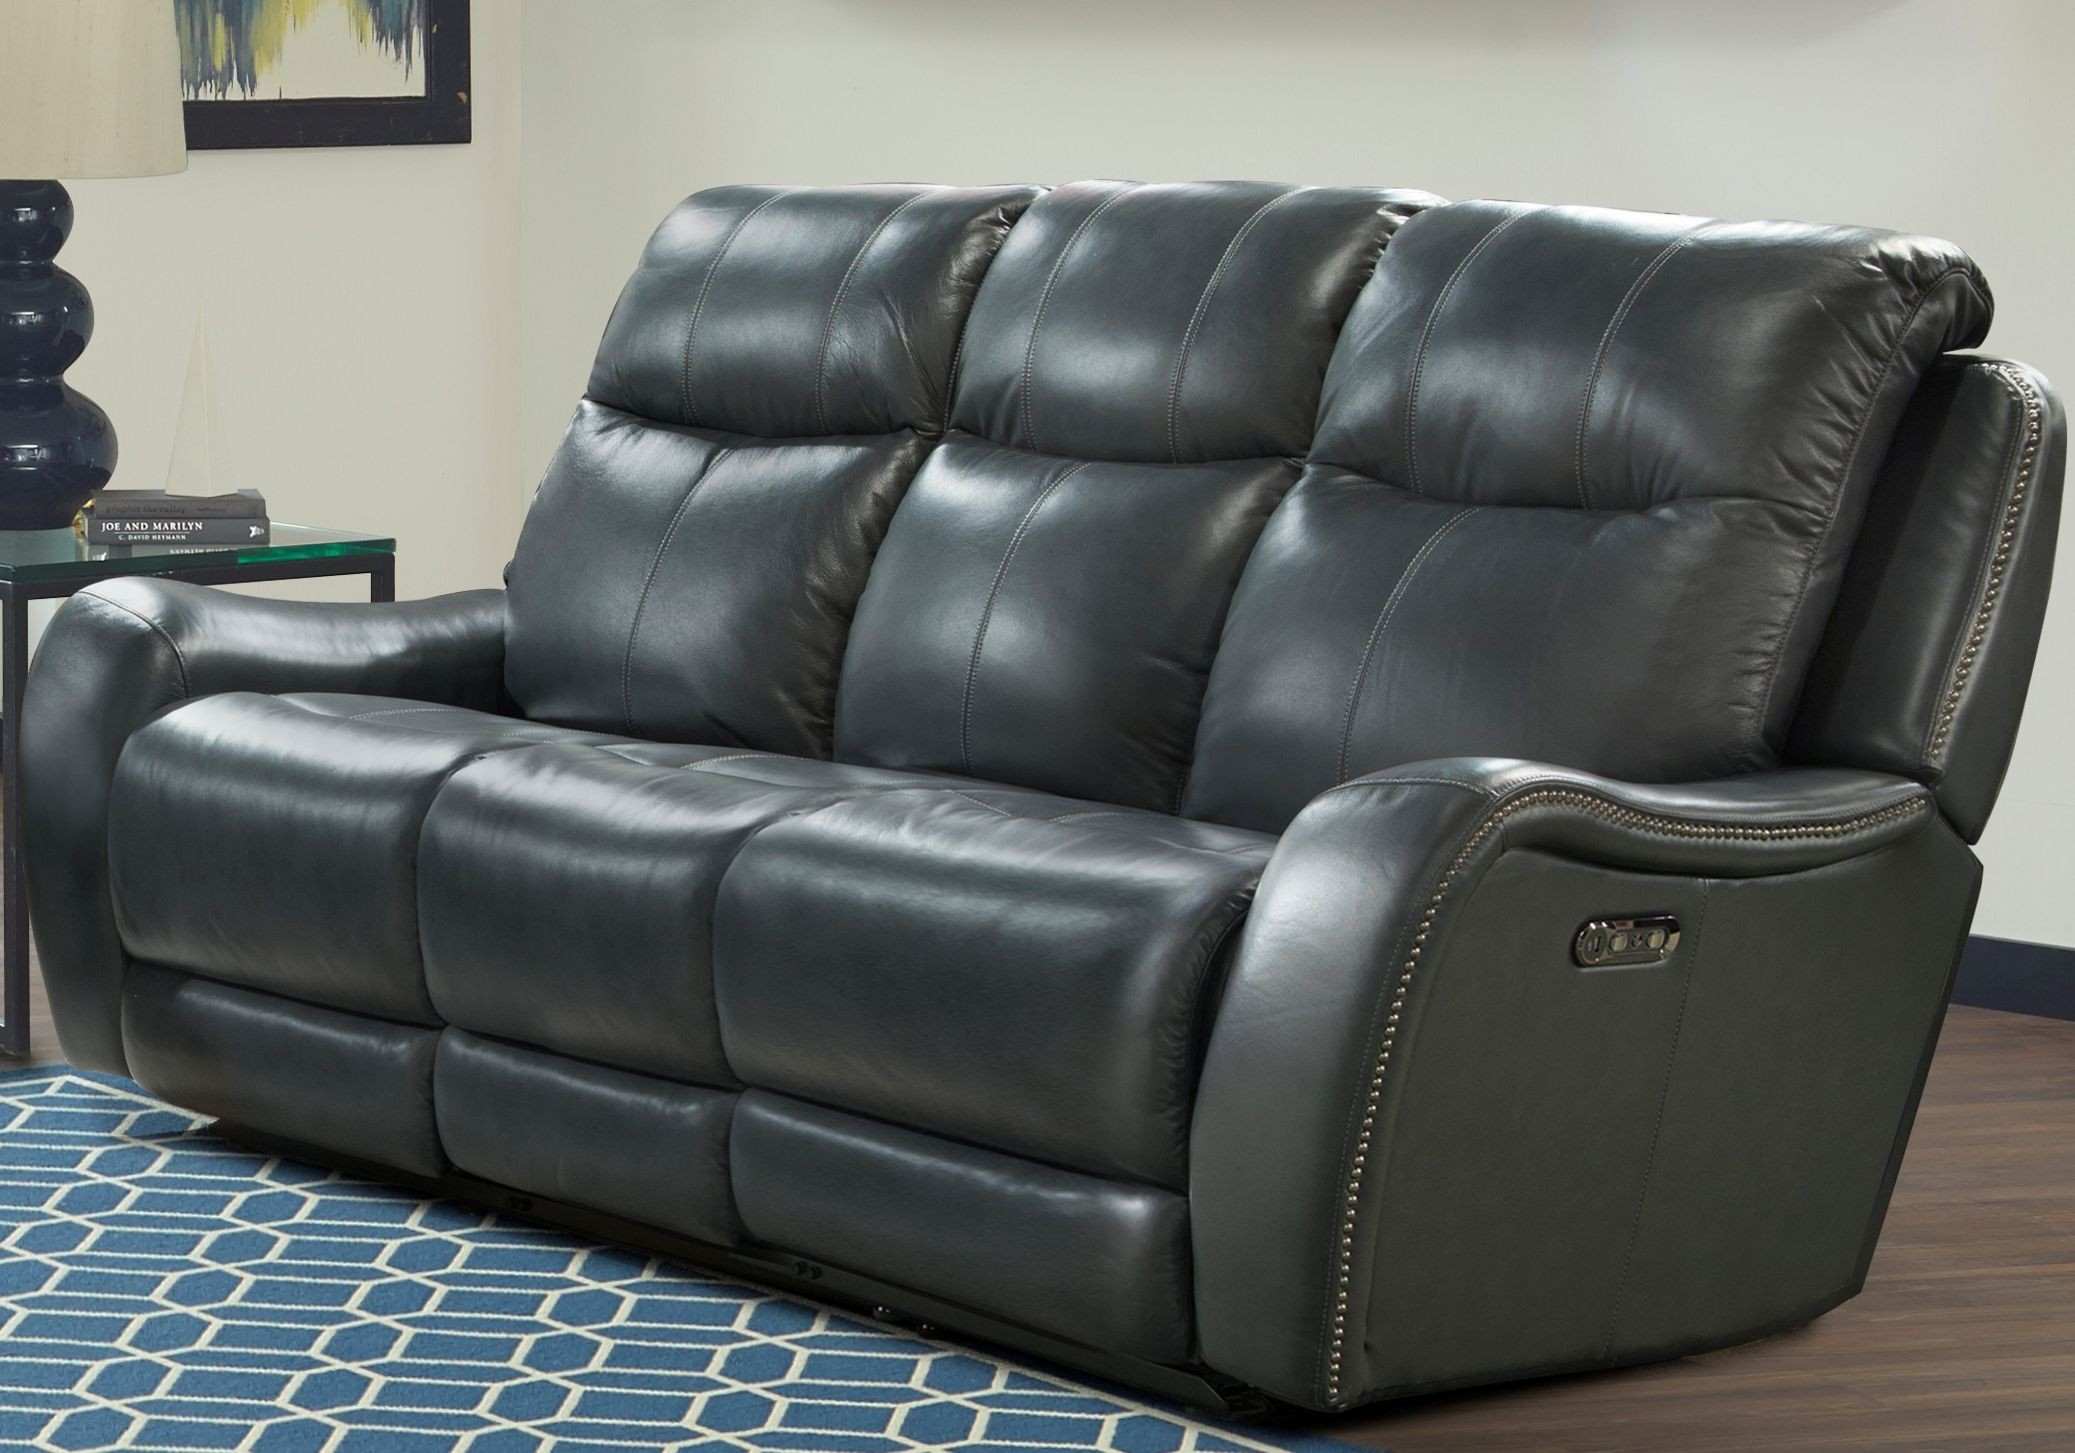 Mammoth denim dual power reclining living room set from parker living coleman furniture Denim loveseat